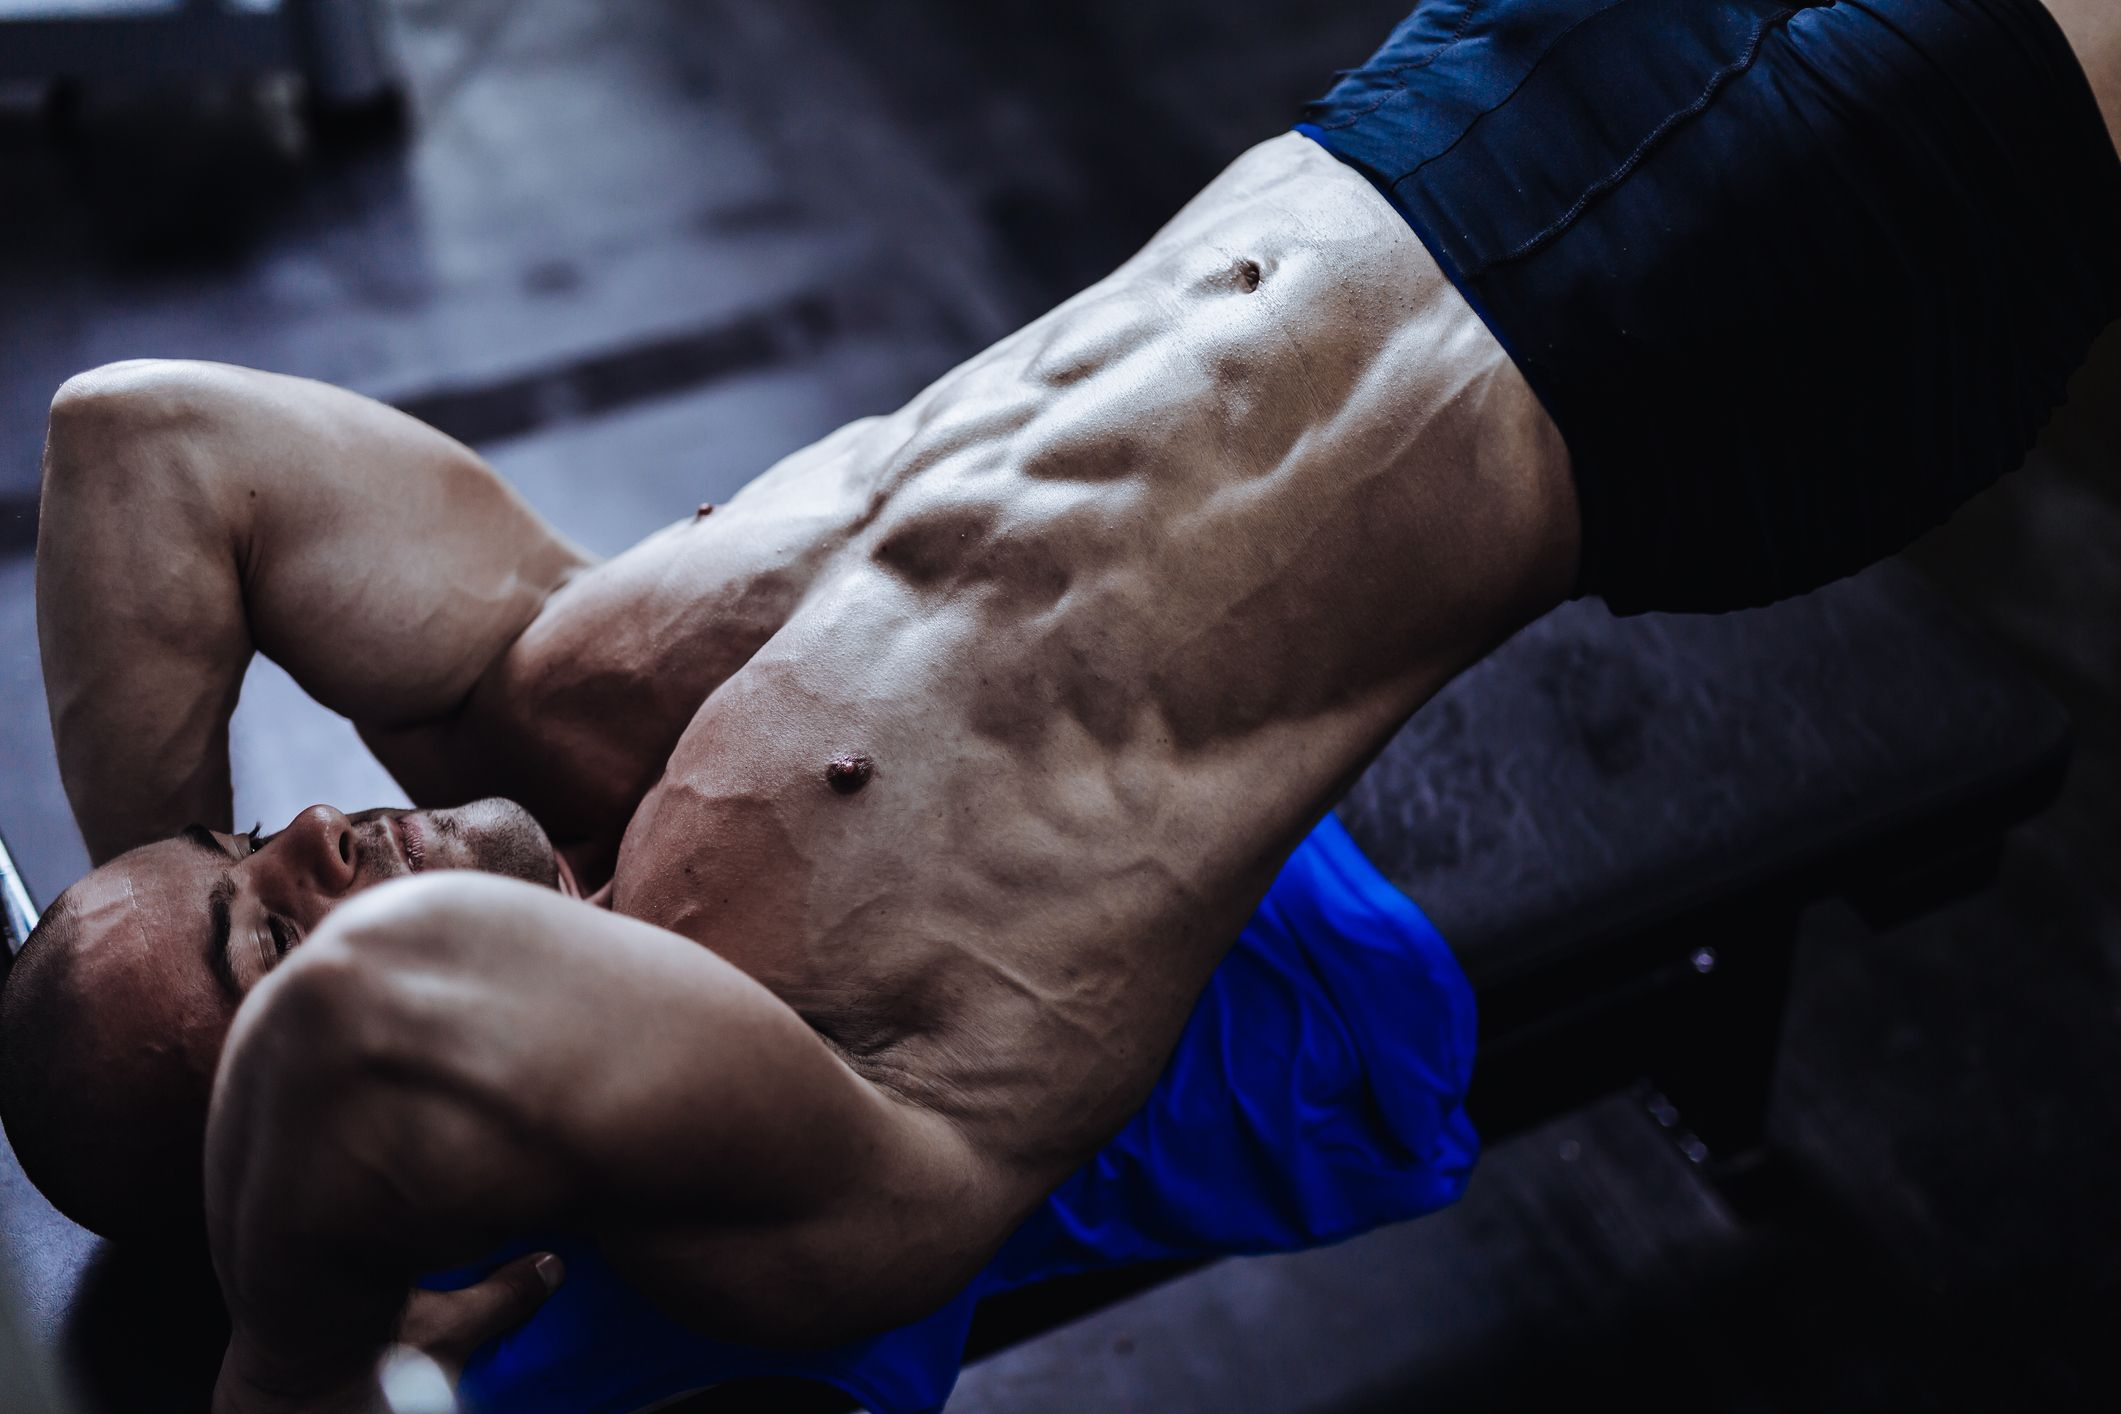 Abs Exercises: 10 of the Best To Get a Six-pack